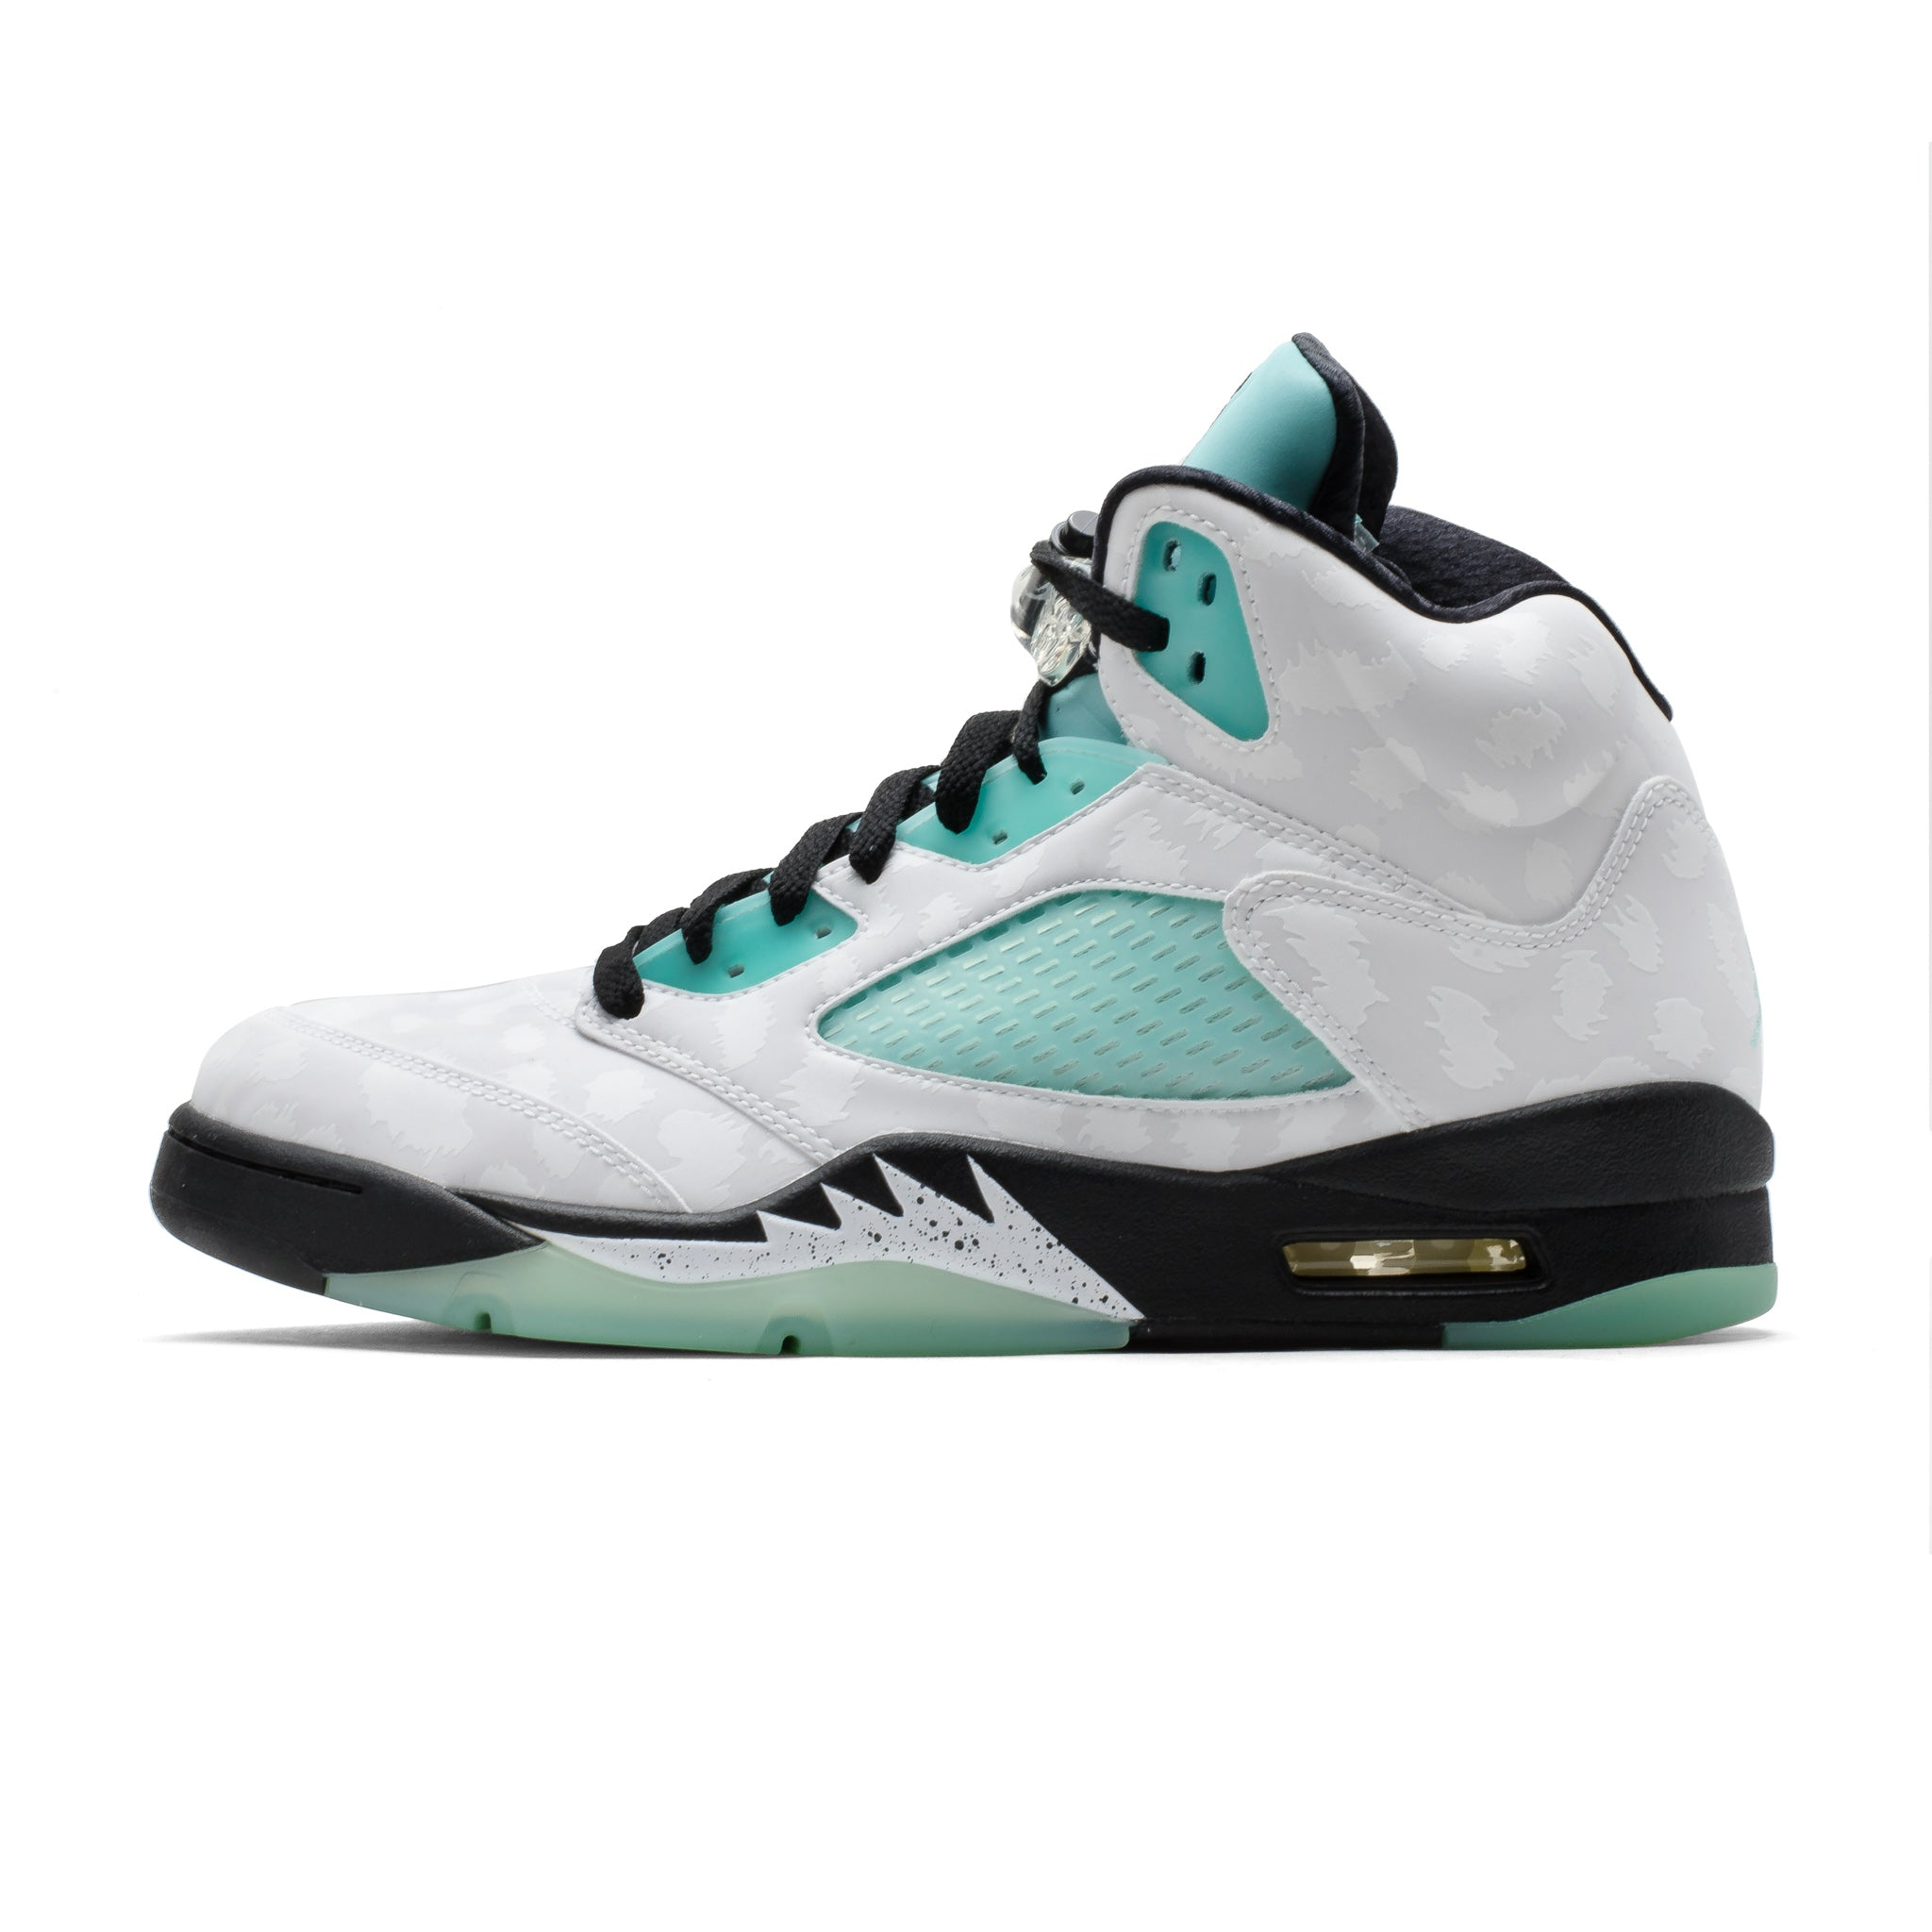 Air Jordan 5 SNGL DY CN2932-100 White